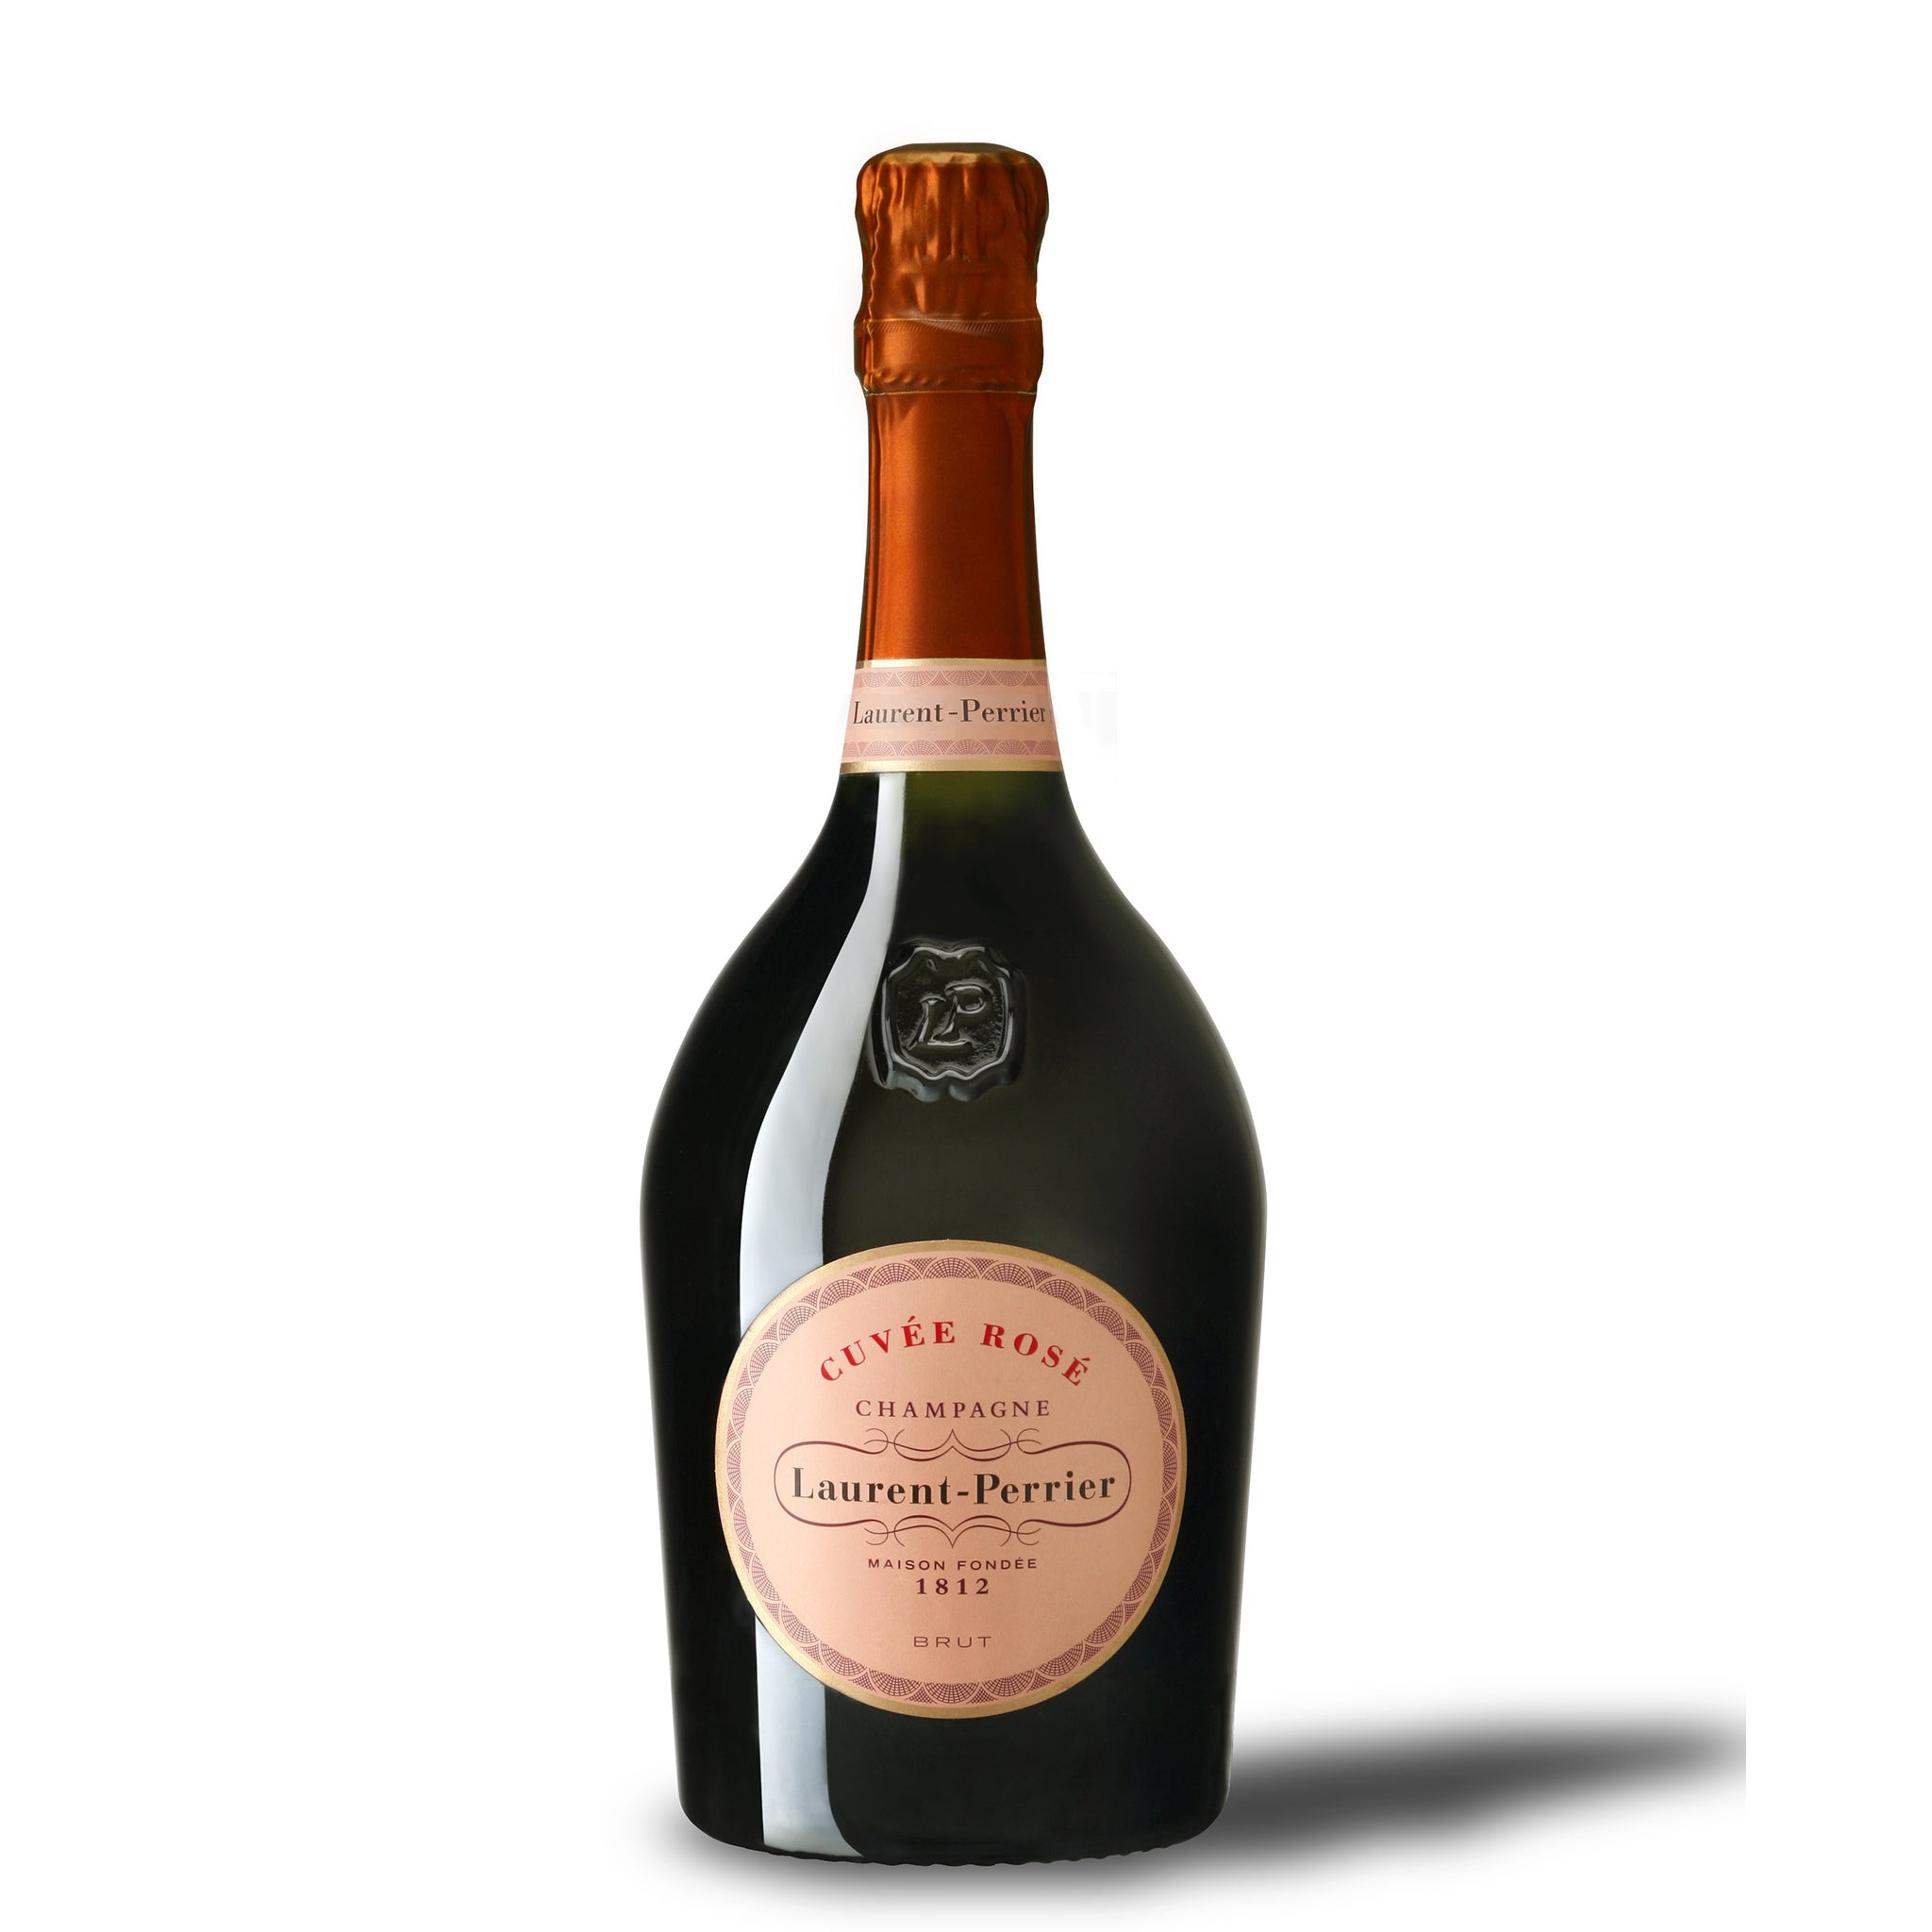 CHAMPAGNE LAURENT PERRIER CUVEE ROSE BRUT 750ML